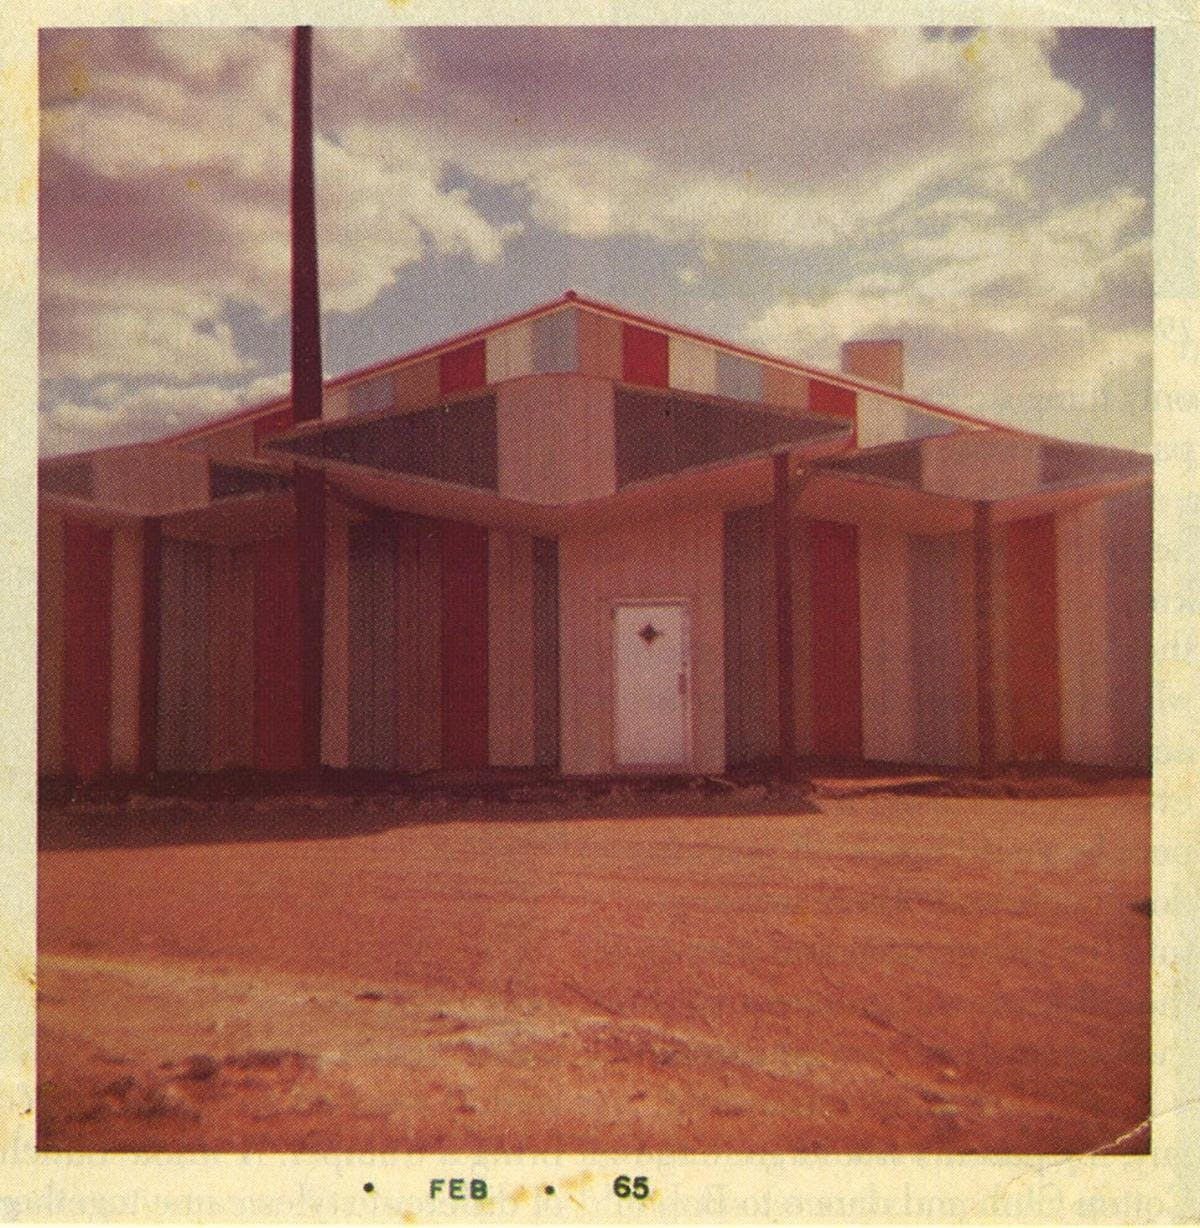 1965: The Hancocks' New Cotton Club, on the Slaton Highway just outside of Lubbock.